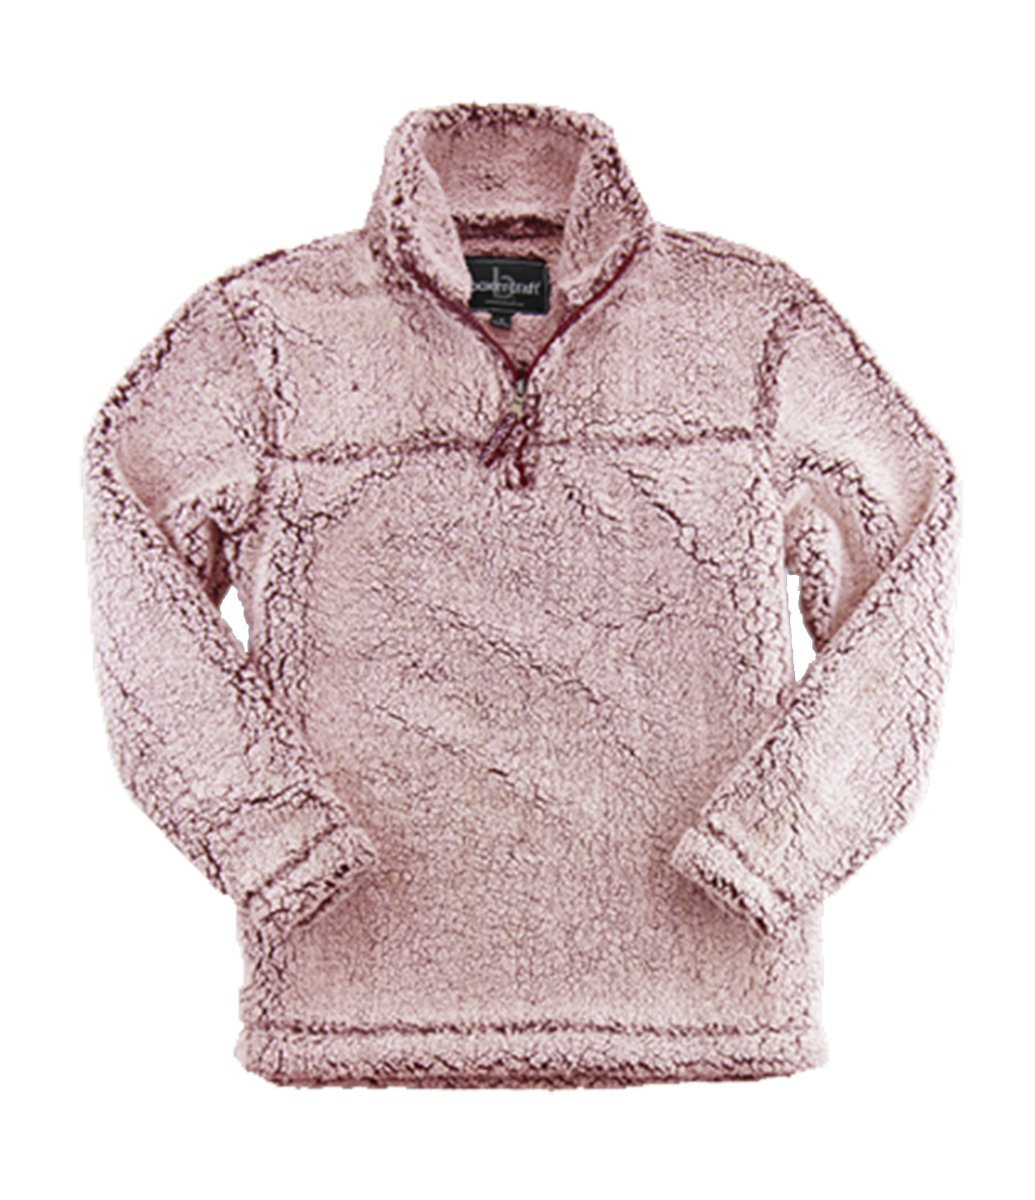 Boxercraft Youth Super Soft 1/4 Zip Sherpa Pullover-Snowy Garnet-large